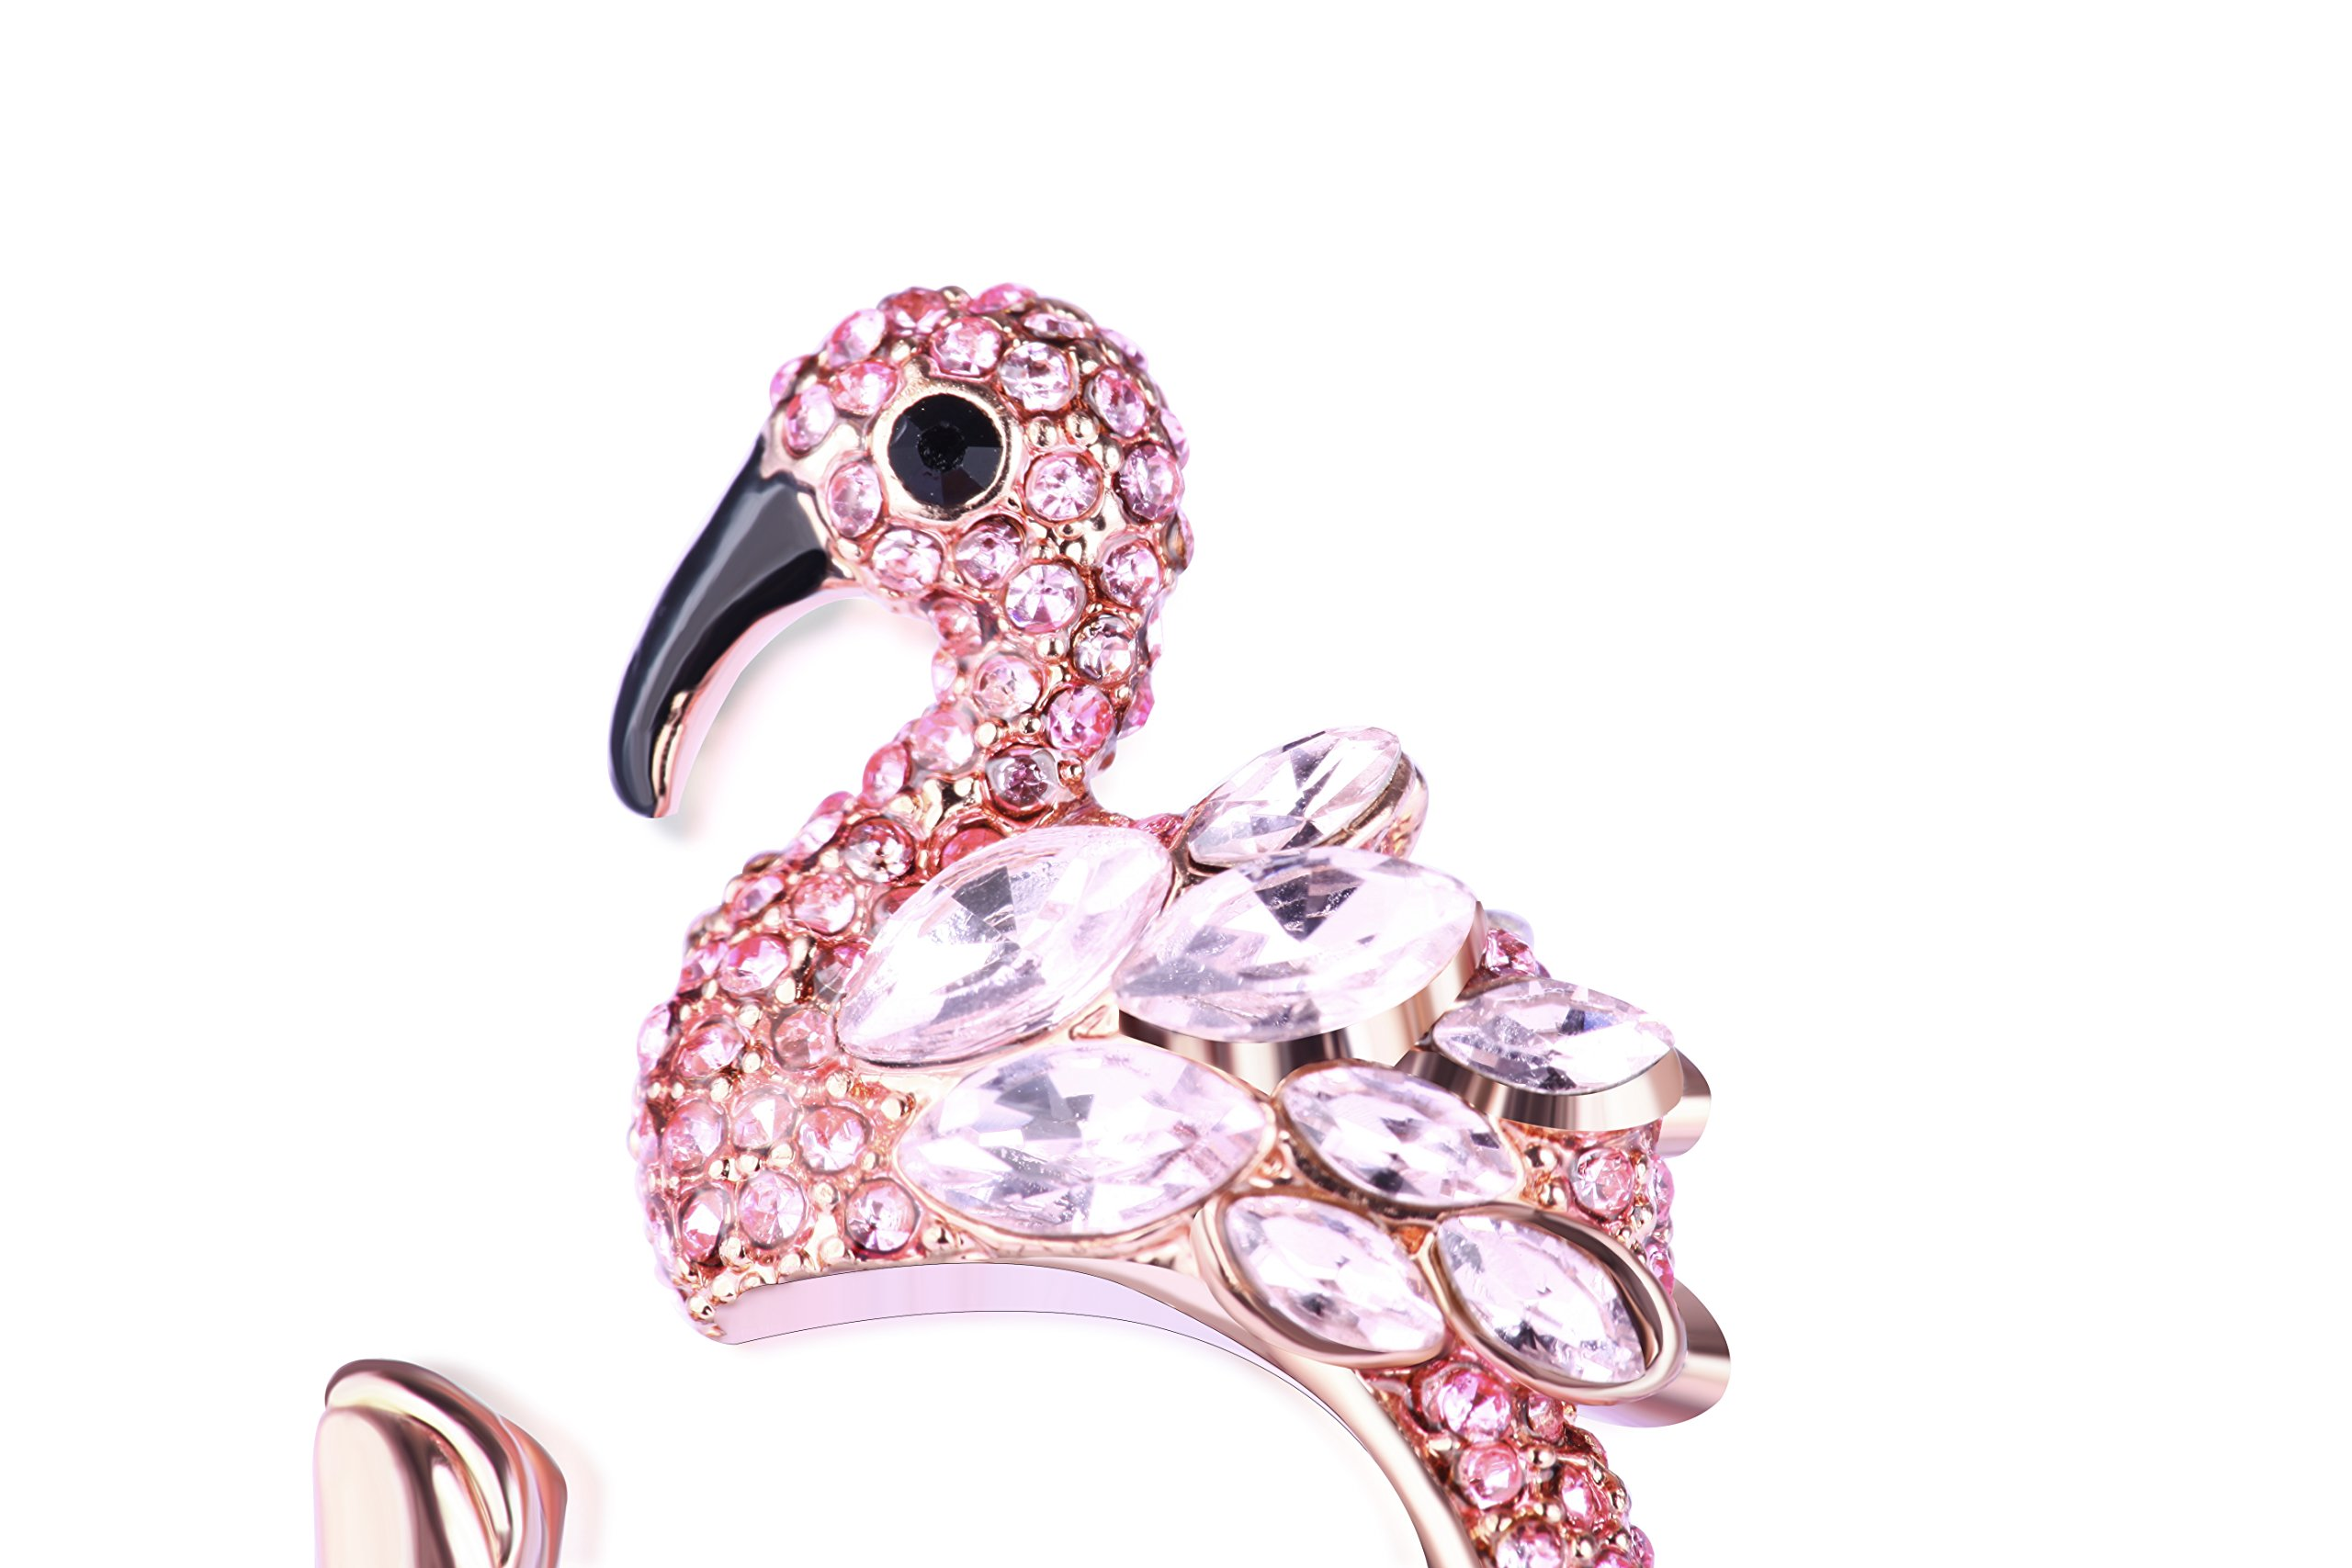 Animal Ring Cute Flamingo for Young Womens Gifts Mom Birthday Teens Girls Party Cuff Statement Ring (Pink) by Paitse (Image #3)